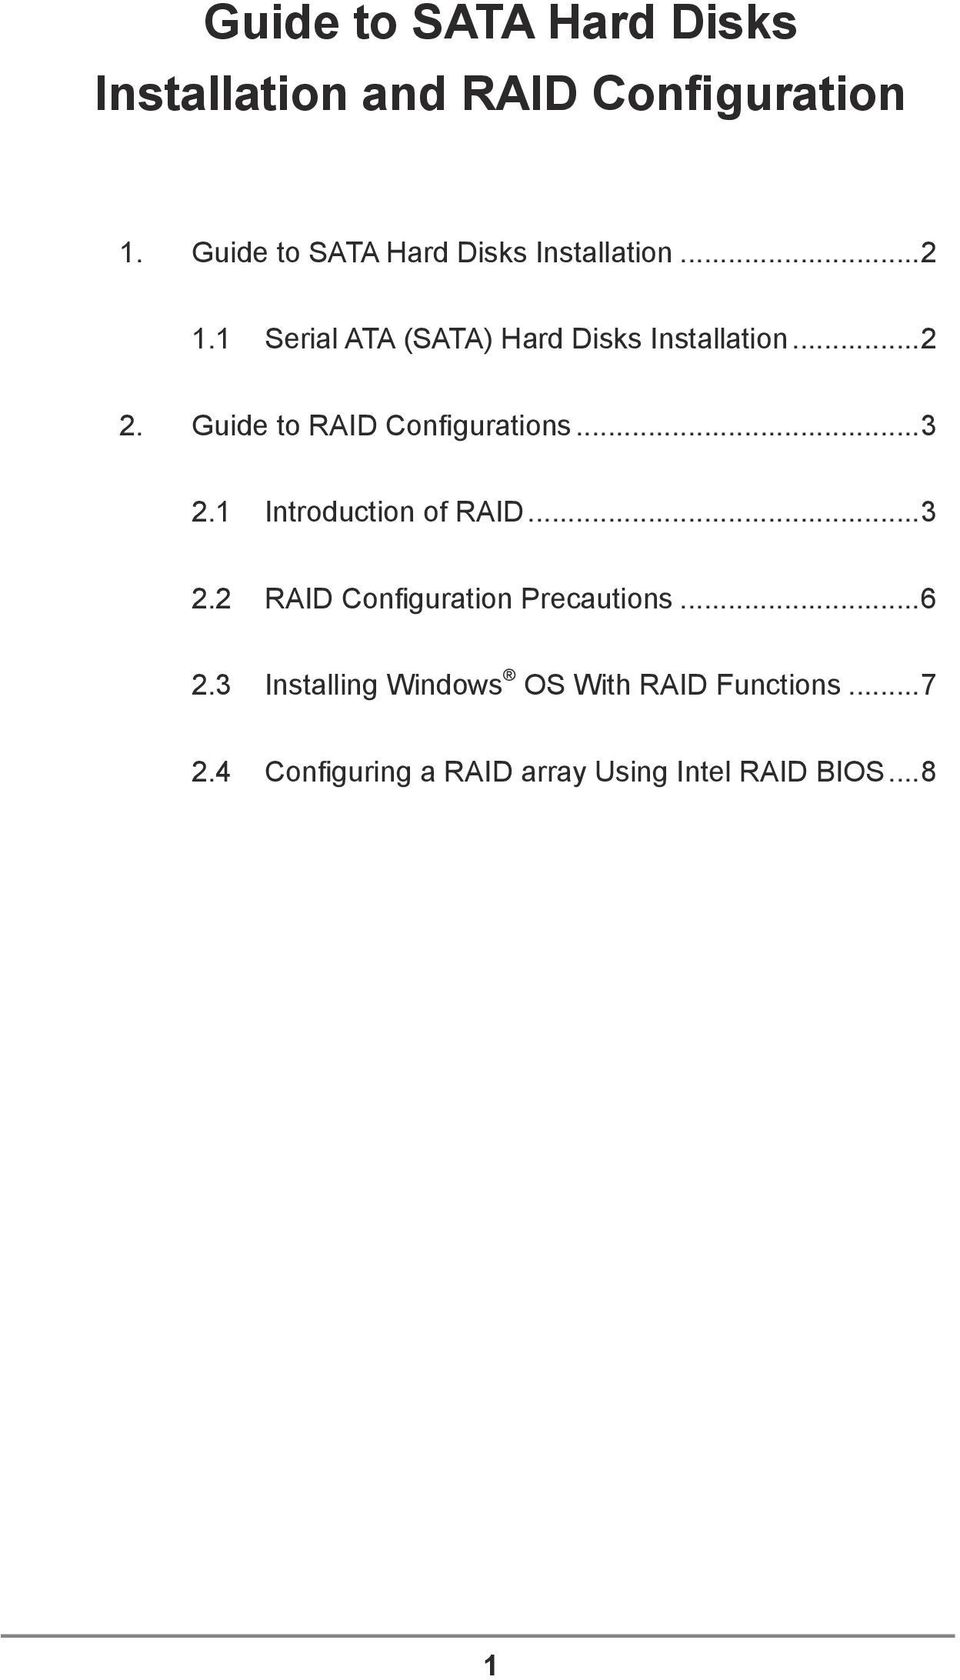 Guide to RAID Configurations...3 2.1 Introduction of RAID...3 2.2 RAID Configuration Precautions.